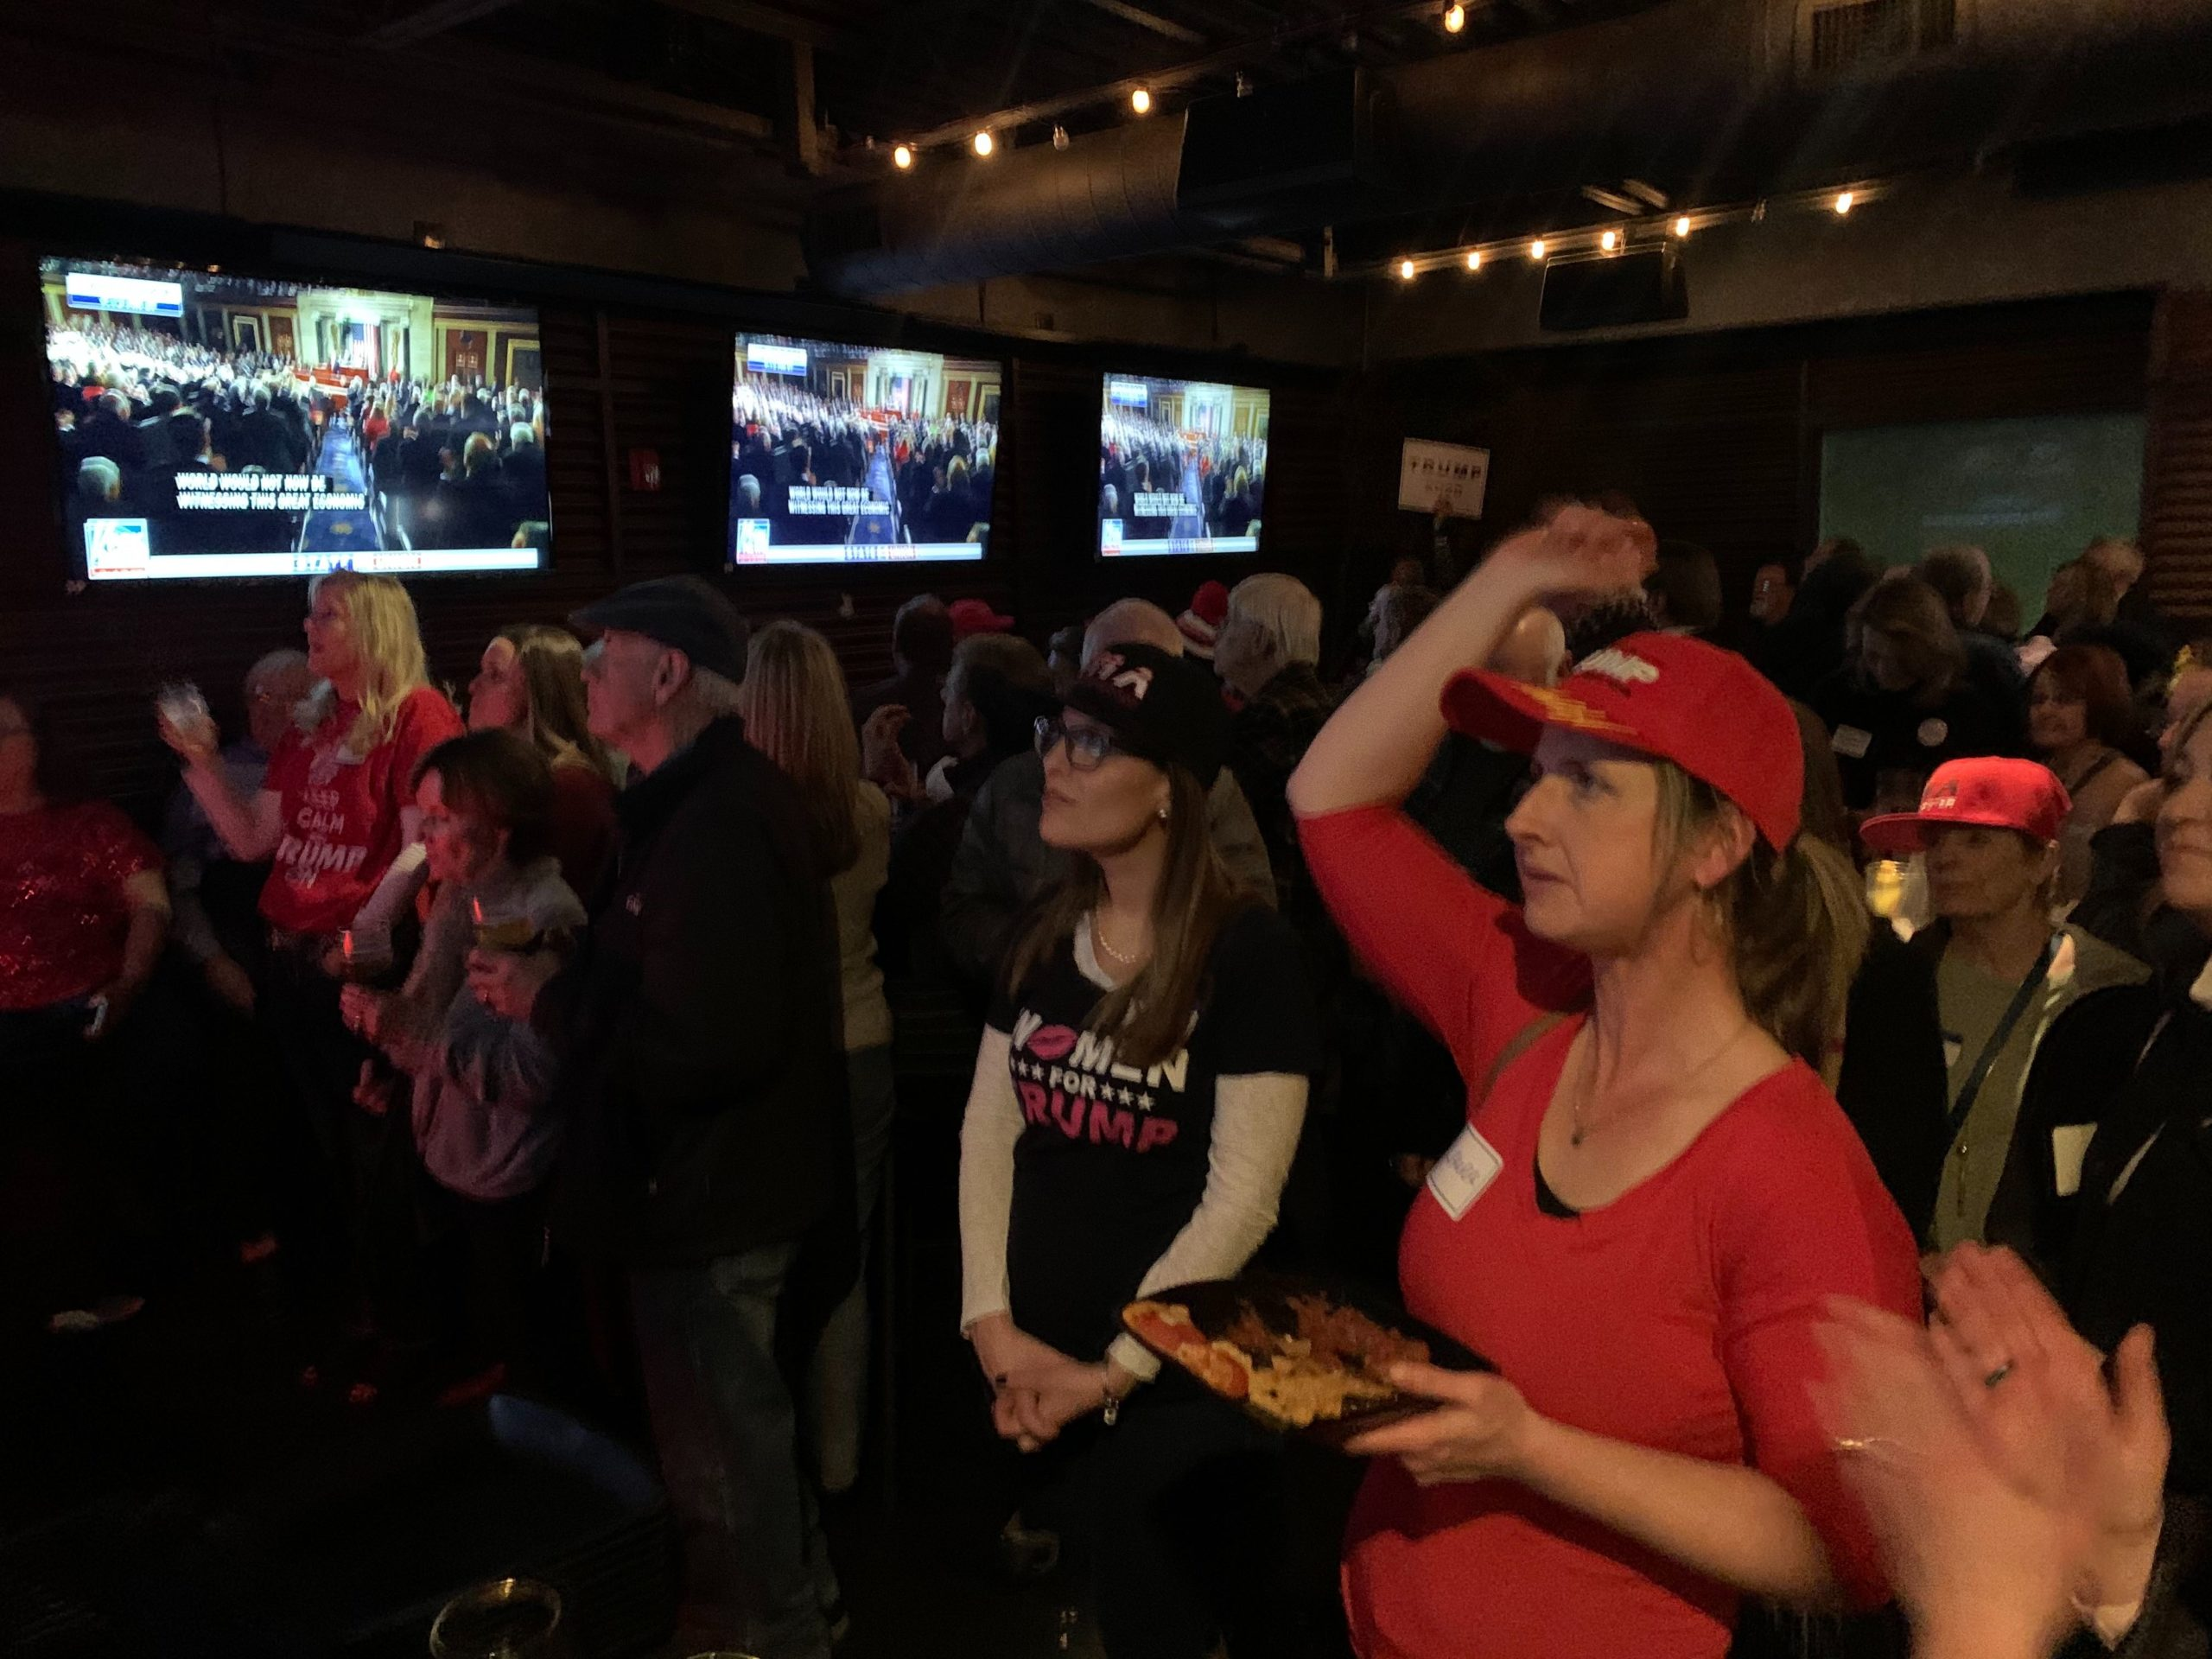 Supporters of President Donald Trump cheered him on during the 2020 State of the Union address on Tuesday, Feb. 4 at The Tavern in Centennial. (Andrew Kenney/CPR News)